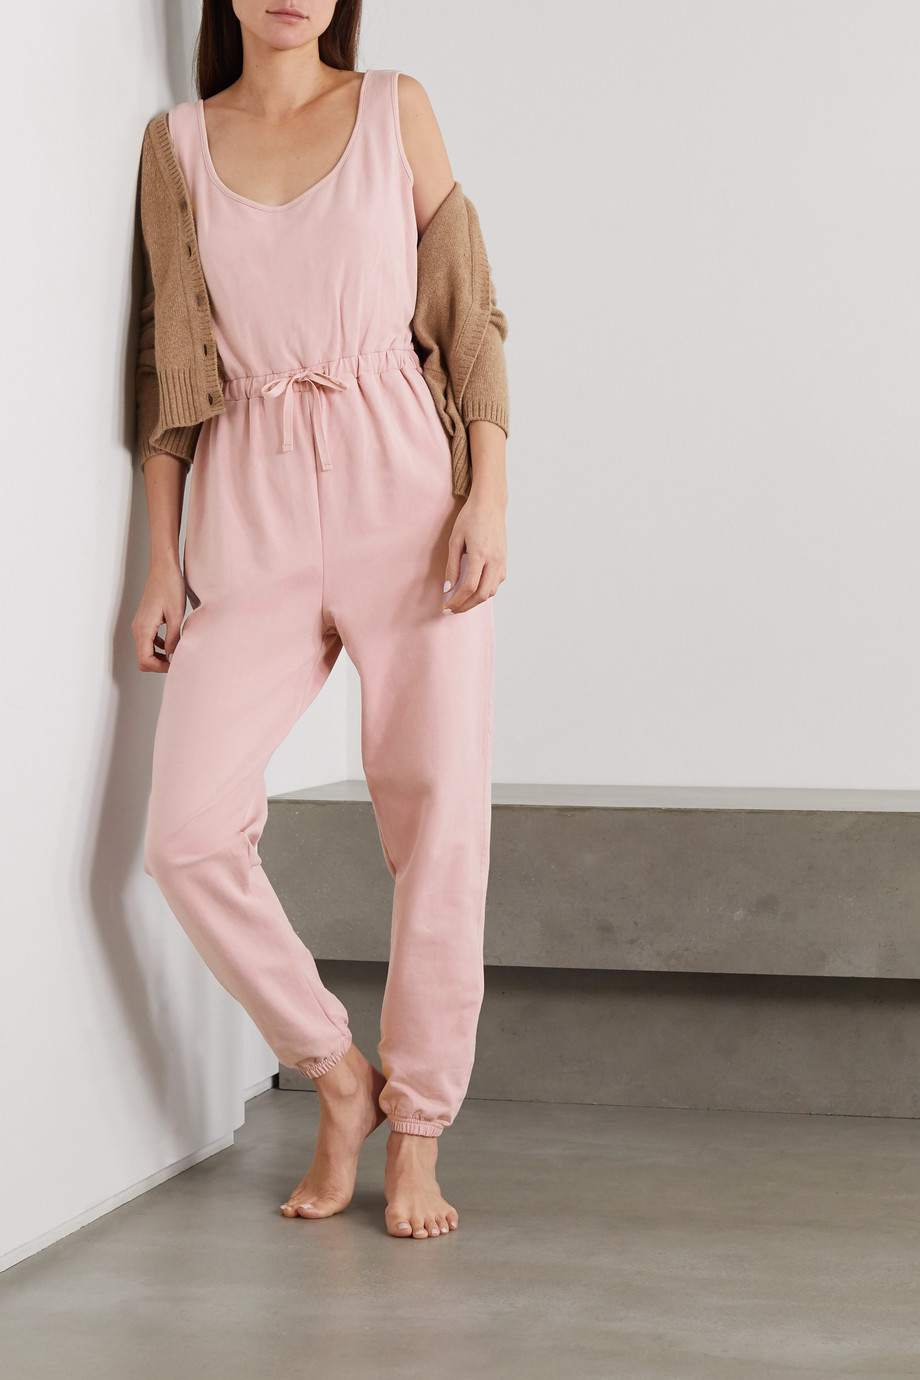 NINETY PERCENT + NET SUSTAIN brushed organic cotton-jersey jumpsuit